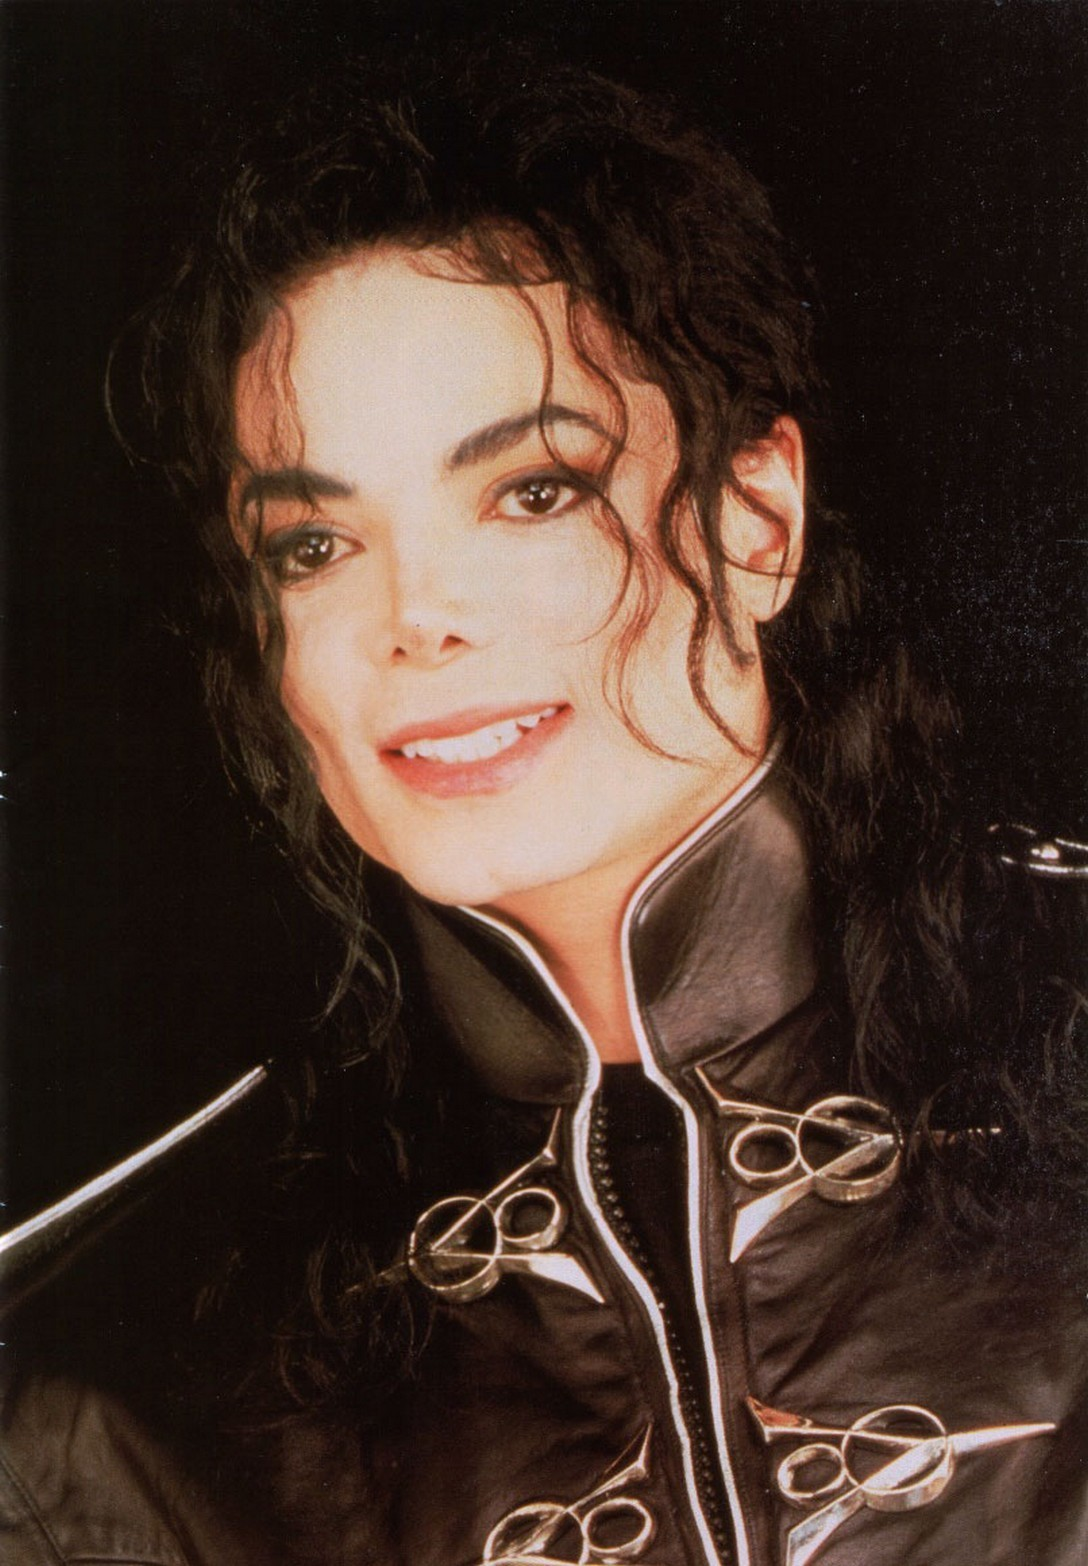 michael jackson high quality free high definition wallpapers. Black Bedroom Furniture Sets. Home Design Ideas